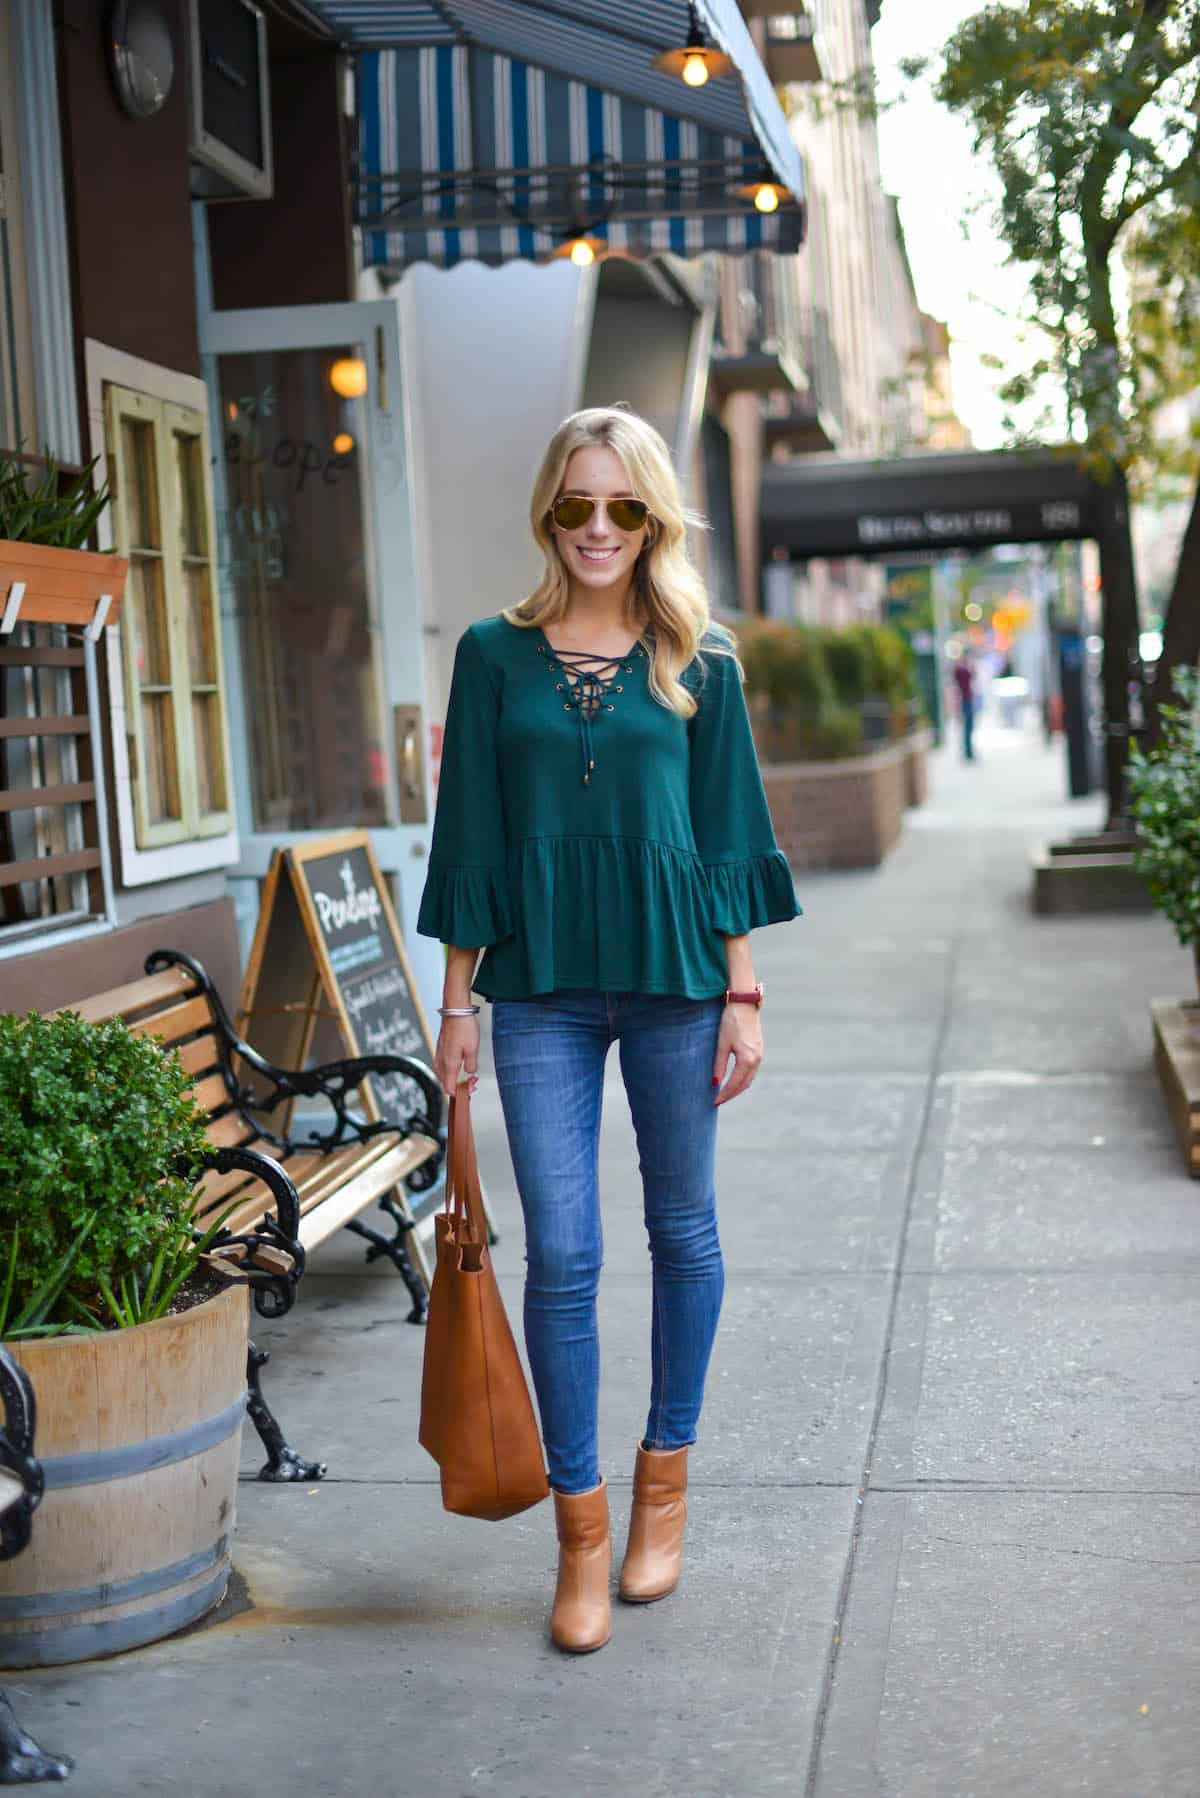 859bd60bd57 New Madewell Transport Tote   Green Bell Sleeve Top